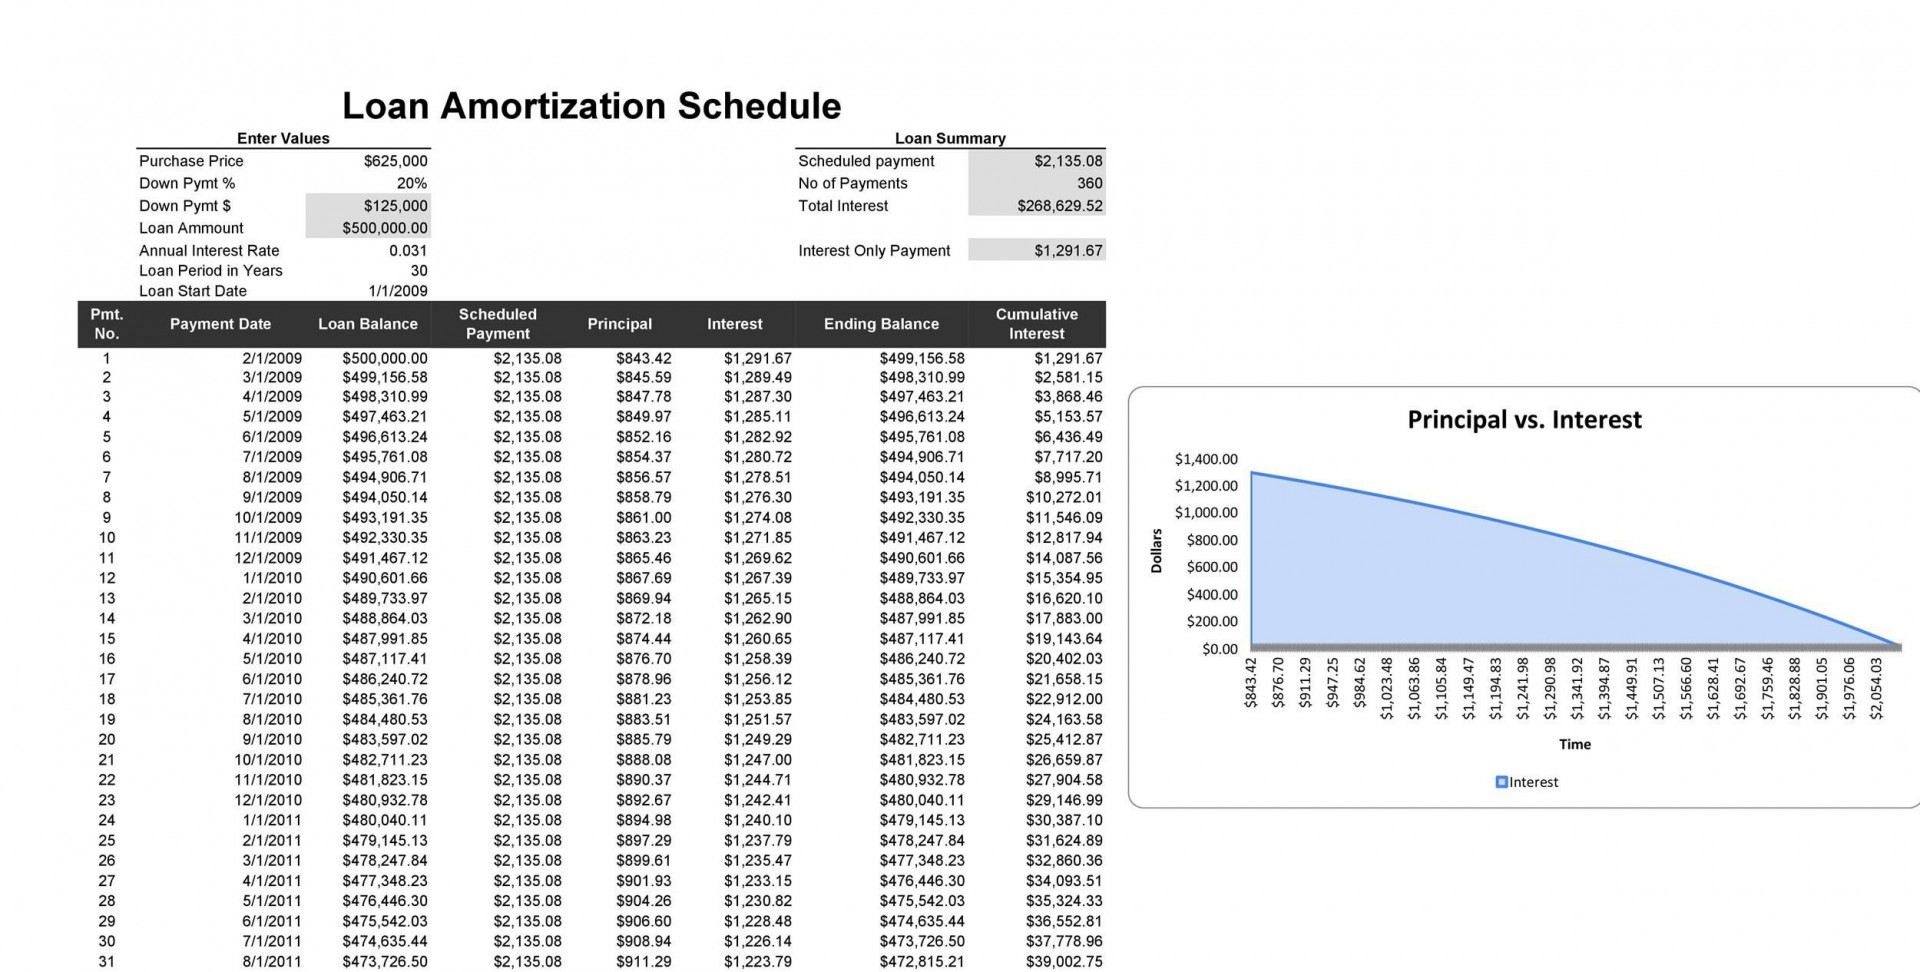 007 Excellent Amortization Schedule Excel Template Image  Calculator Free Loan Software Download1920